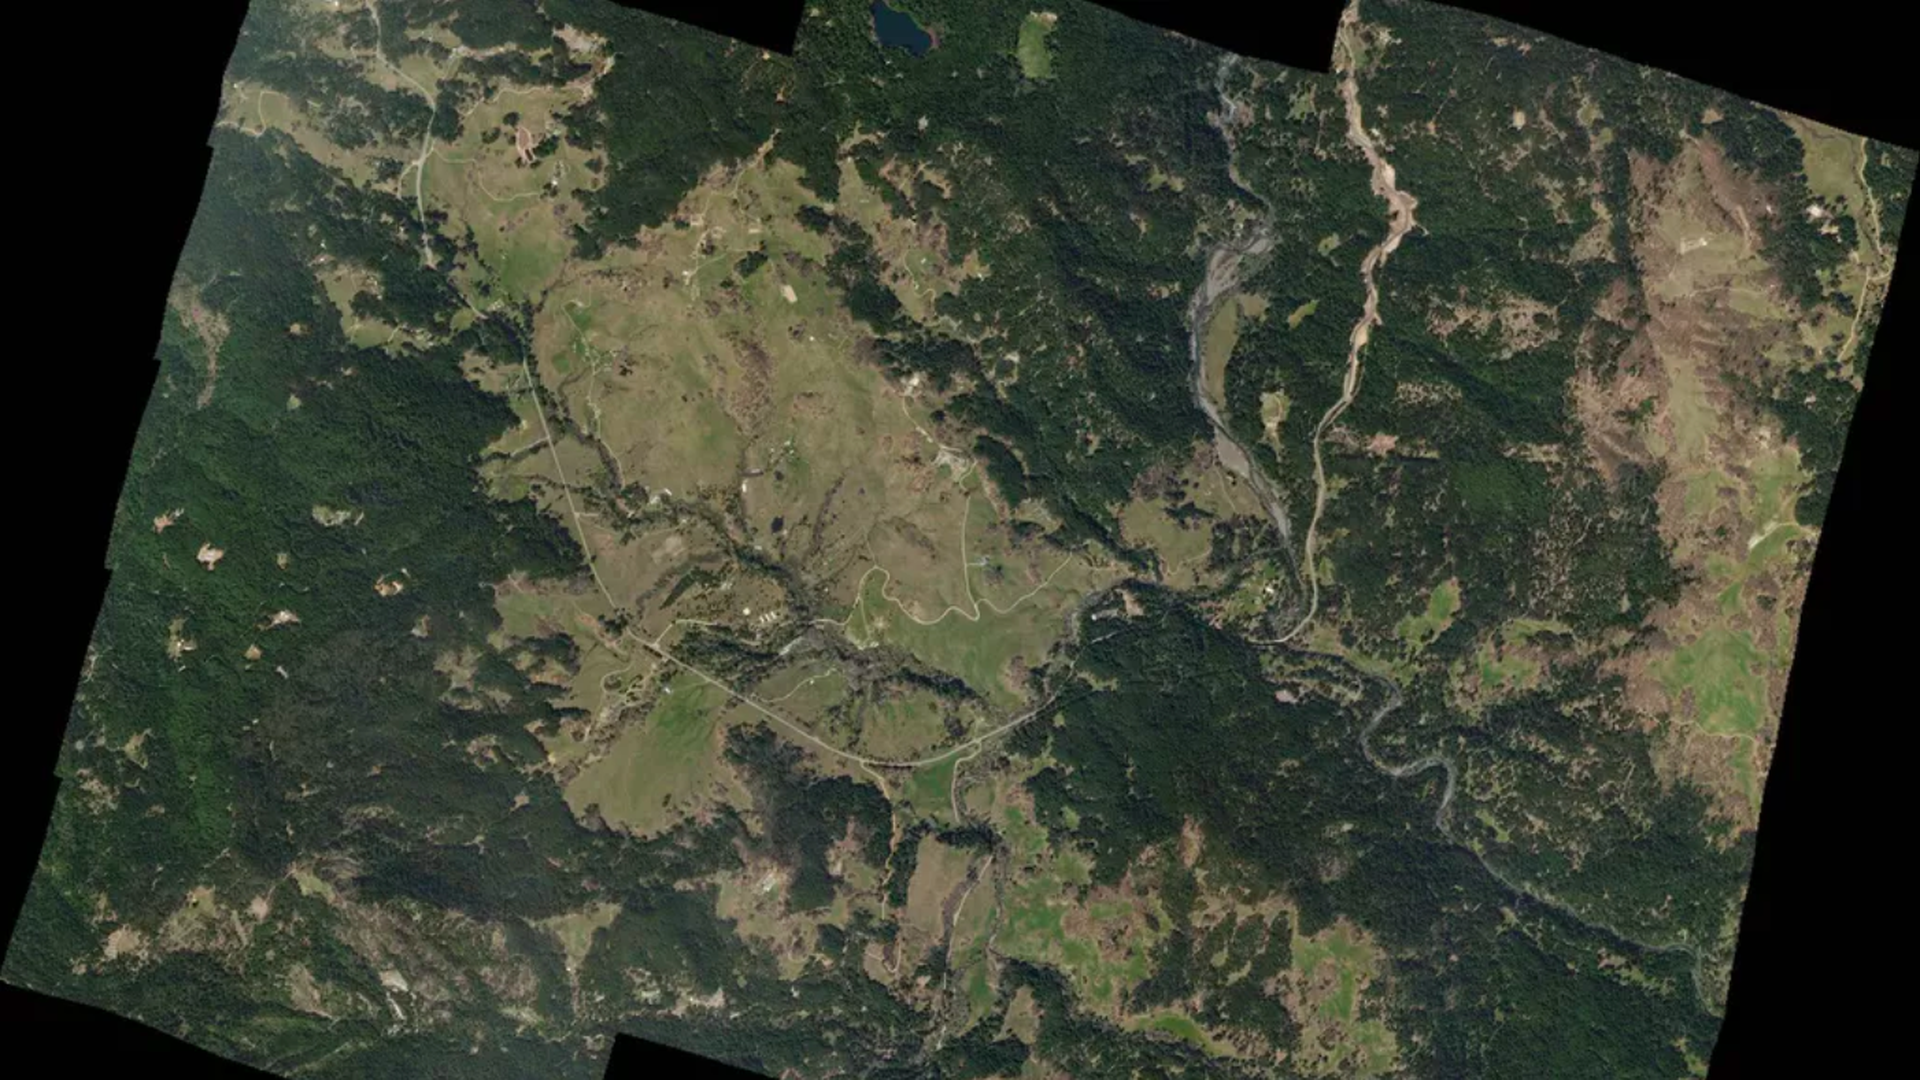 This image is a satellite image or birds eye view of a mountainous and forested region.